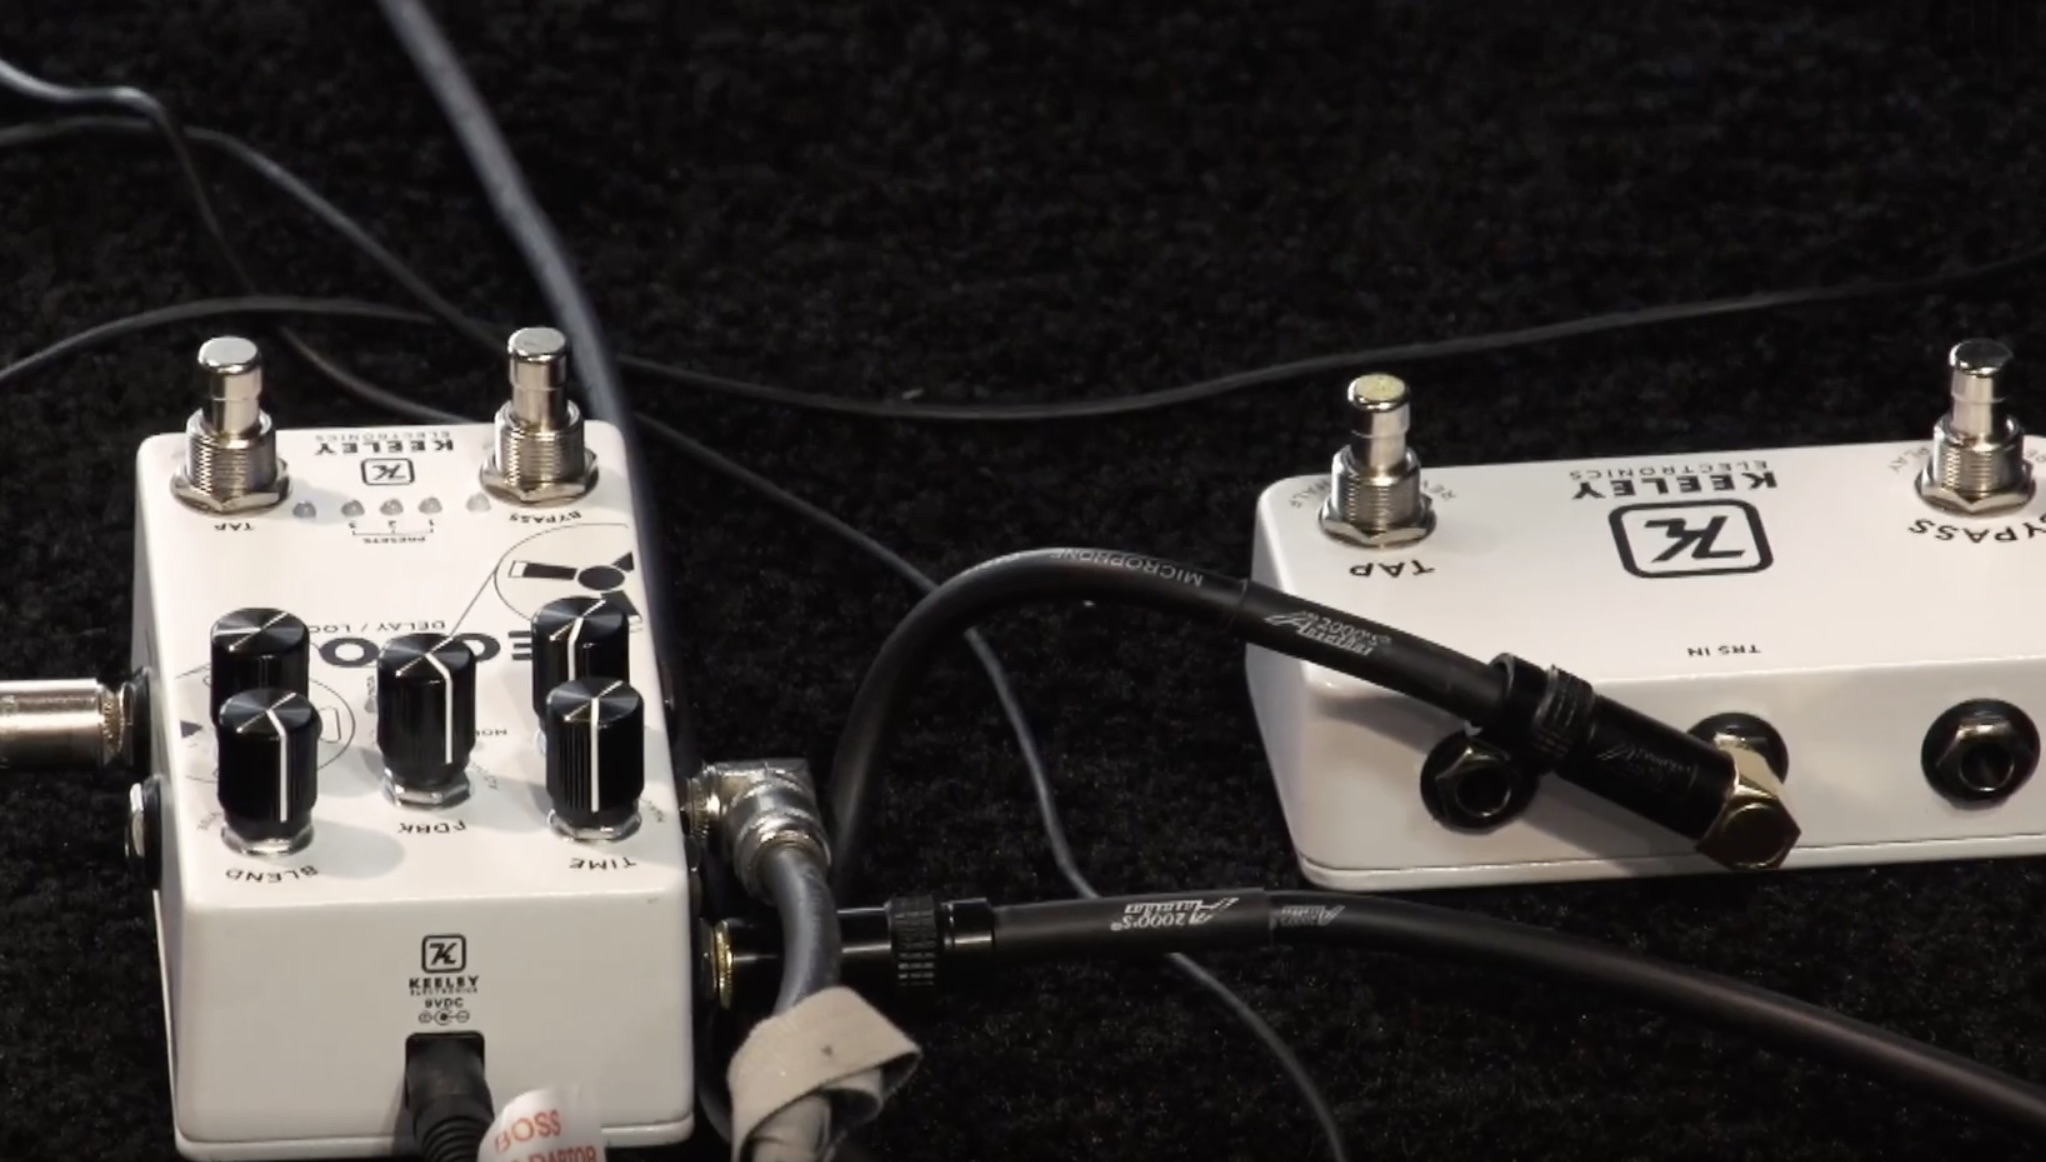 GW live at NAMM 2020: Did Keeley Electronics' Eccos delay/looper live up to the hype?